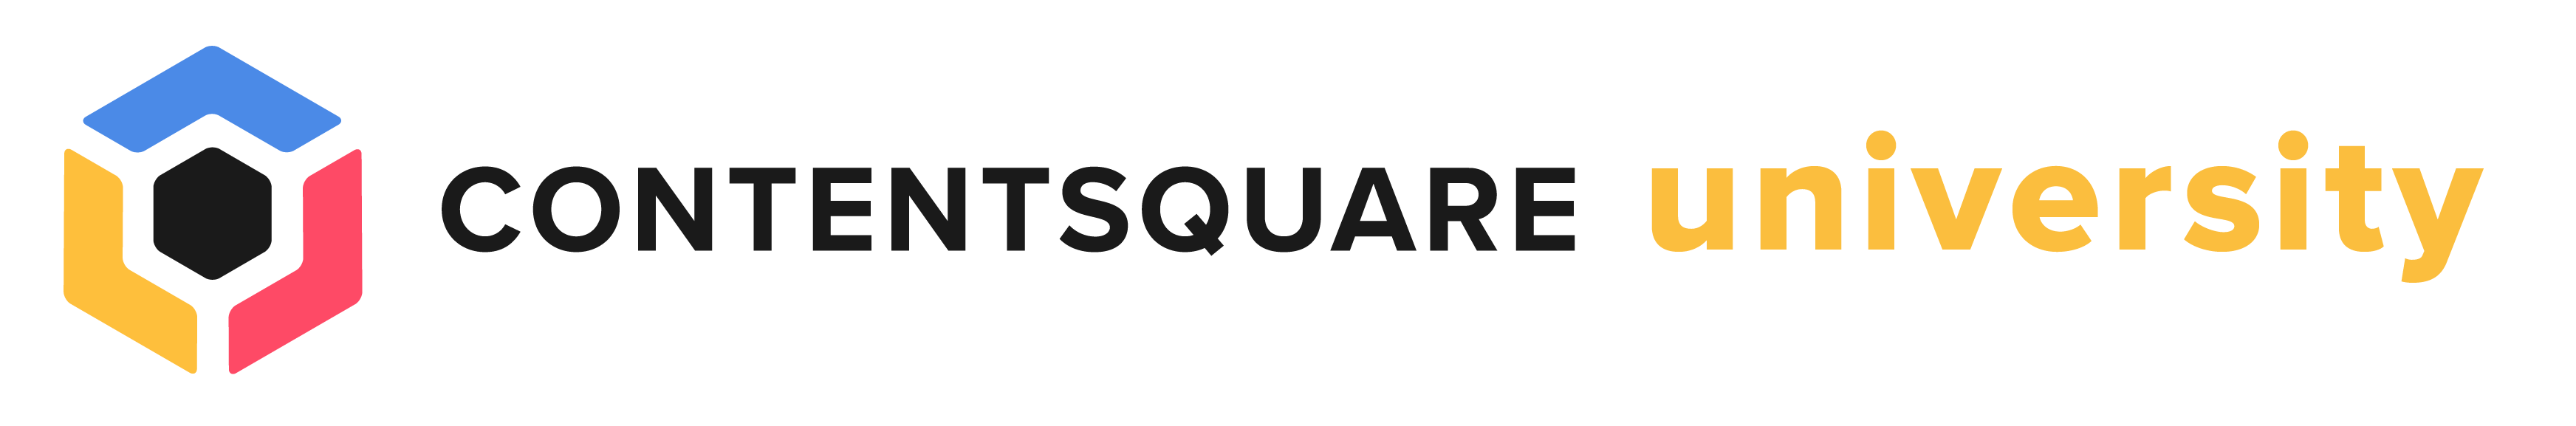 Contentsquare University